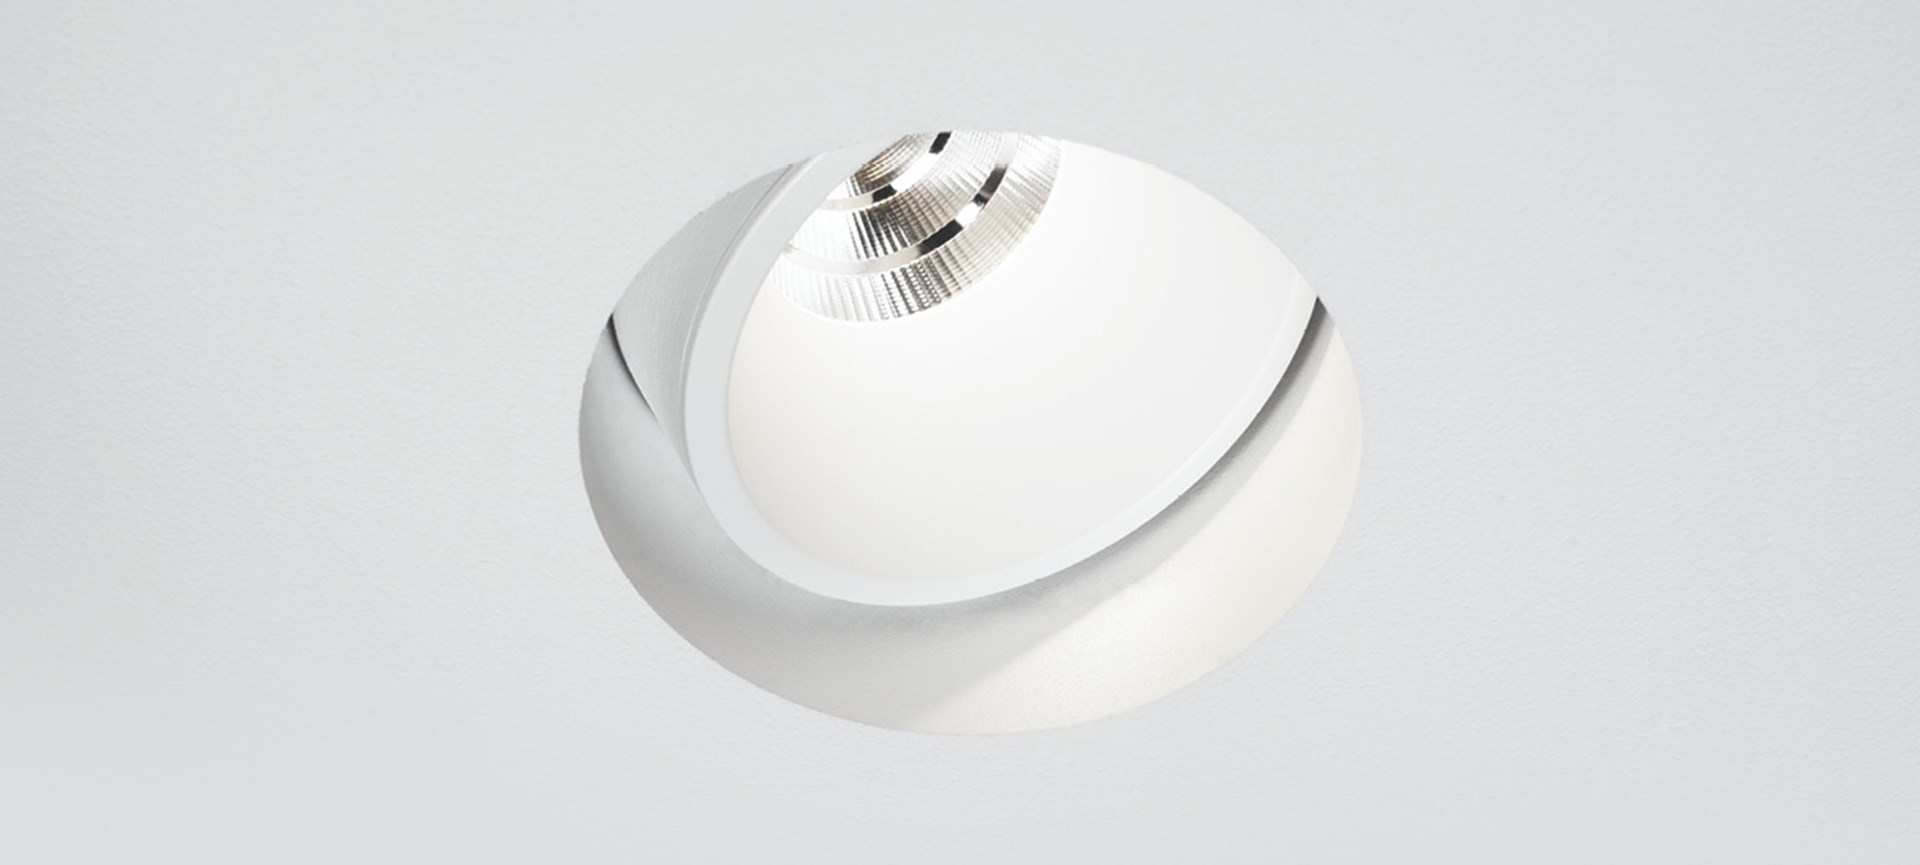 Invader Prolicht Product Family How To Install Recessed Lighting For Dramatic Effect The Pro Web Index 1264x570px